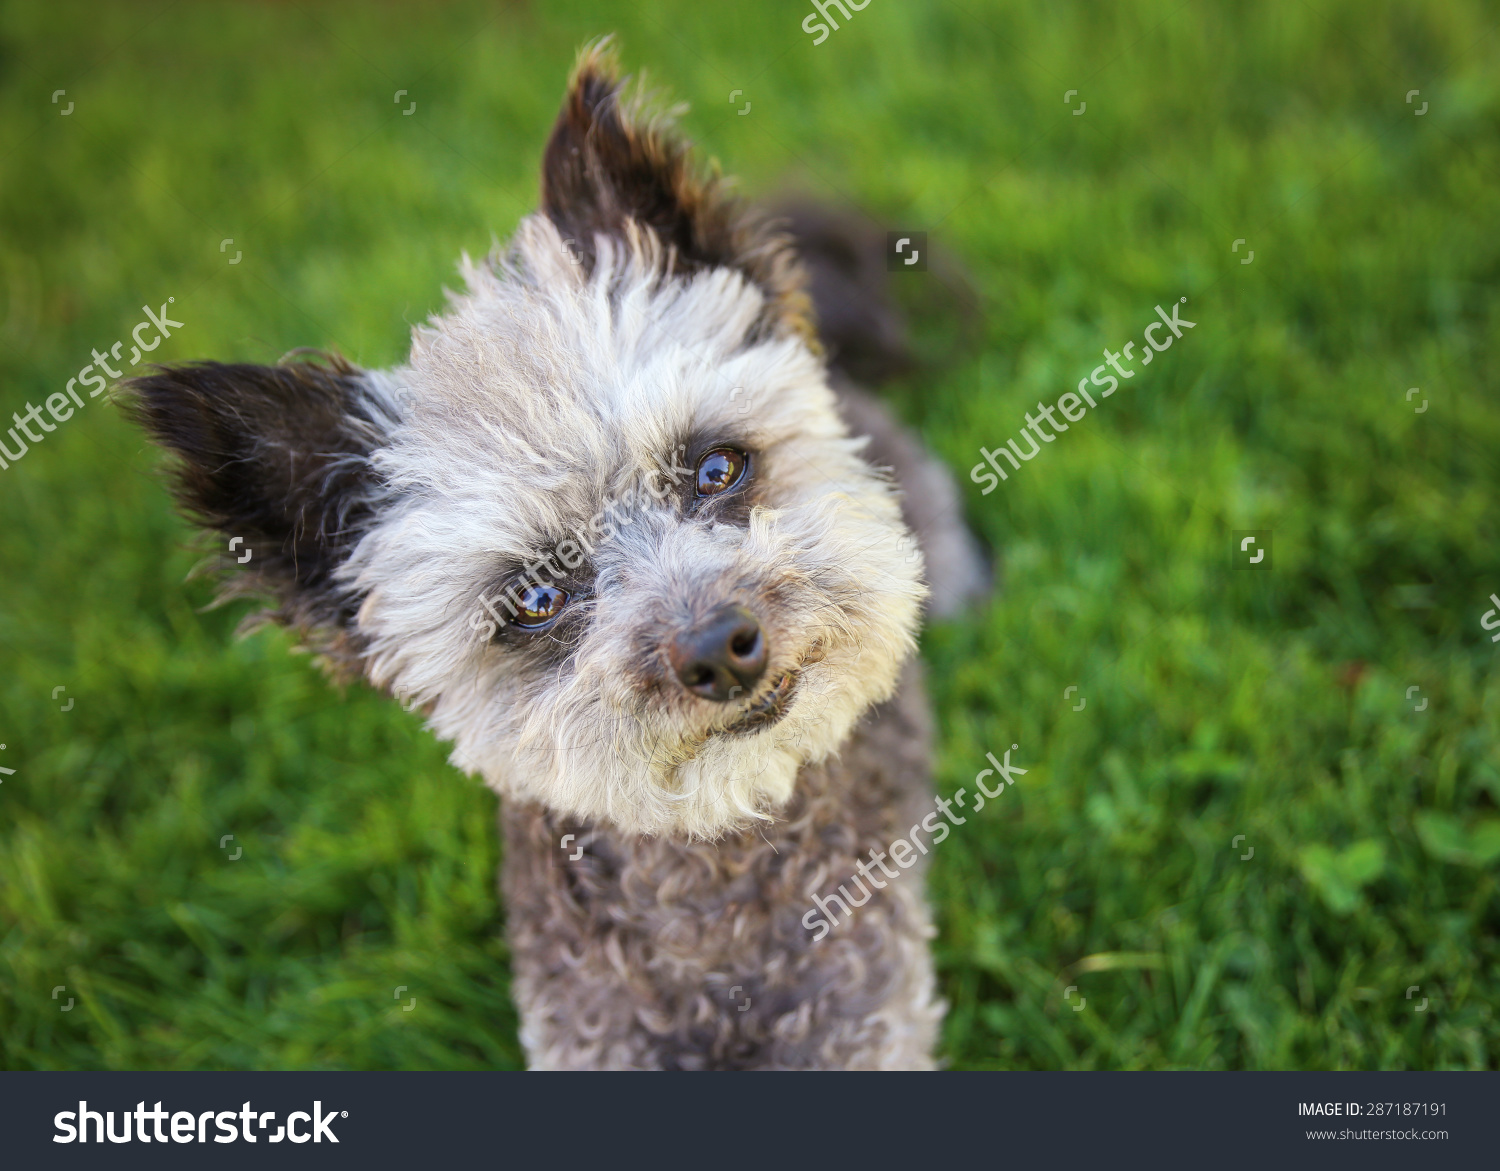 Cute Poodle Chihuahua Mix Senior Female Stock Photo 287187191.